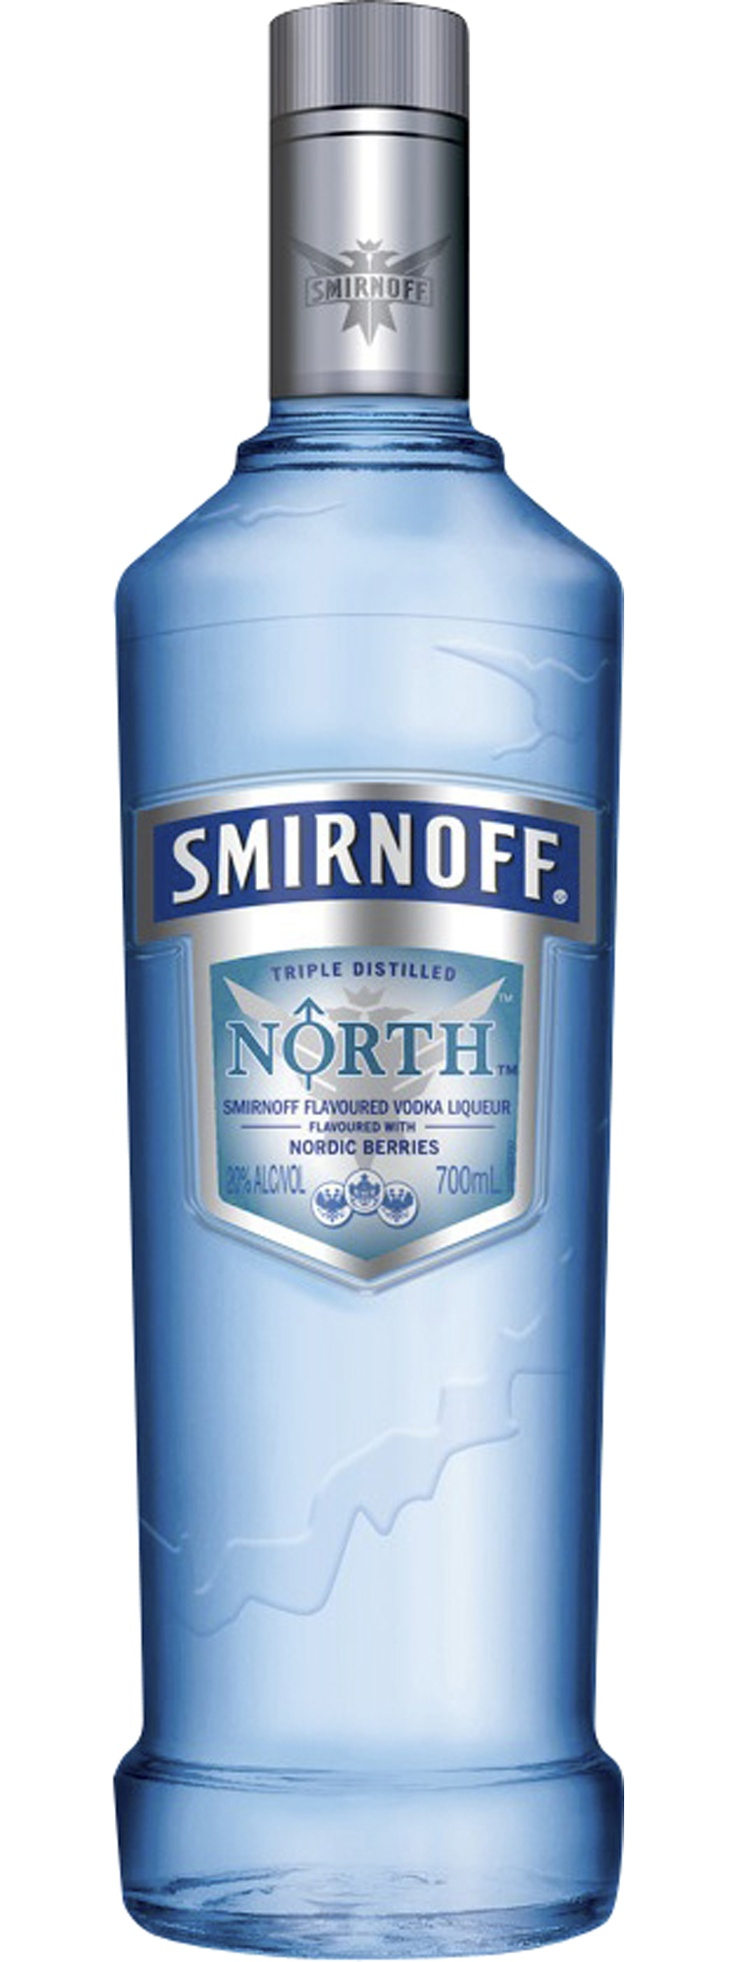 The wait is over! Smirnoff North has arrived along with its crisp, invigorating triple-distilled freshness that Smirnoff are famous the world over for. Flavoured with rare Nordic Berries, Smirnoff North is destined to be the Vodka must-have of the summer - Taste True North.